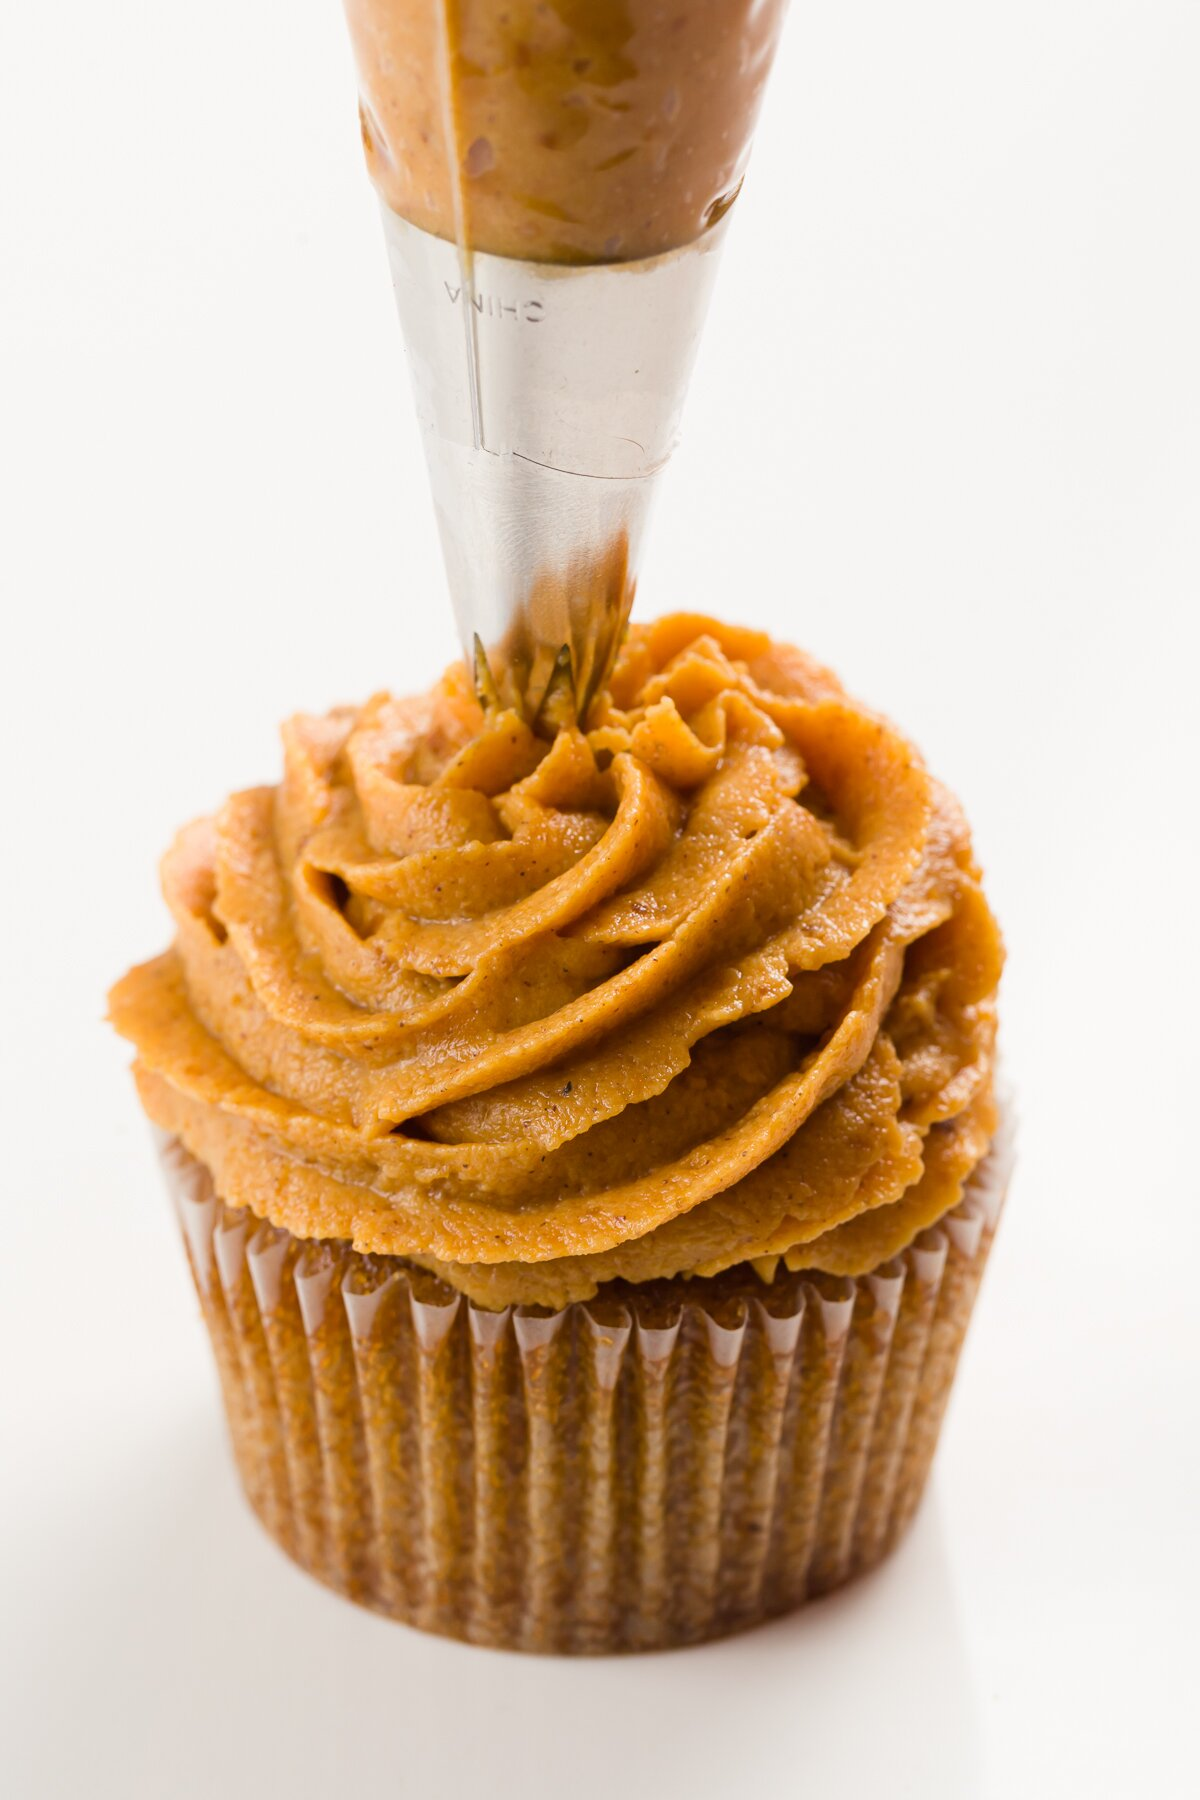 Piping pumpkin frosting onto a cupcake